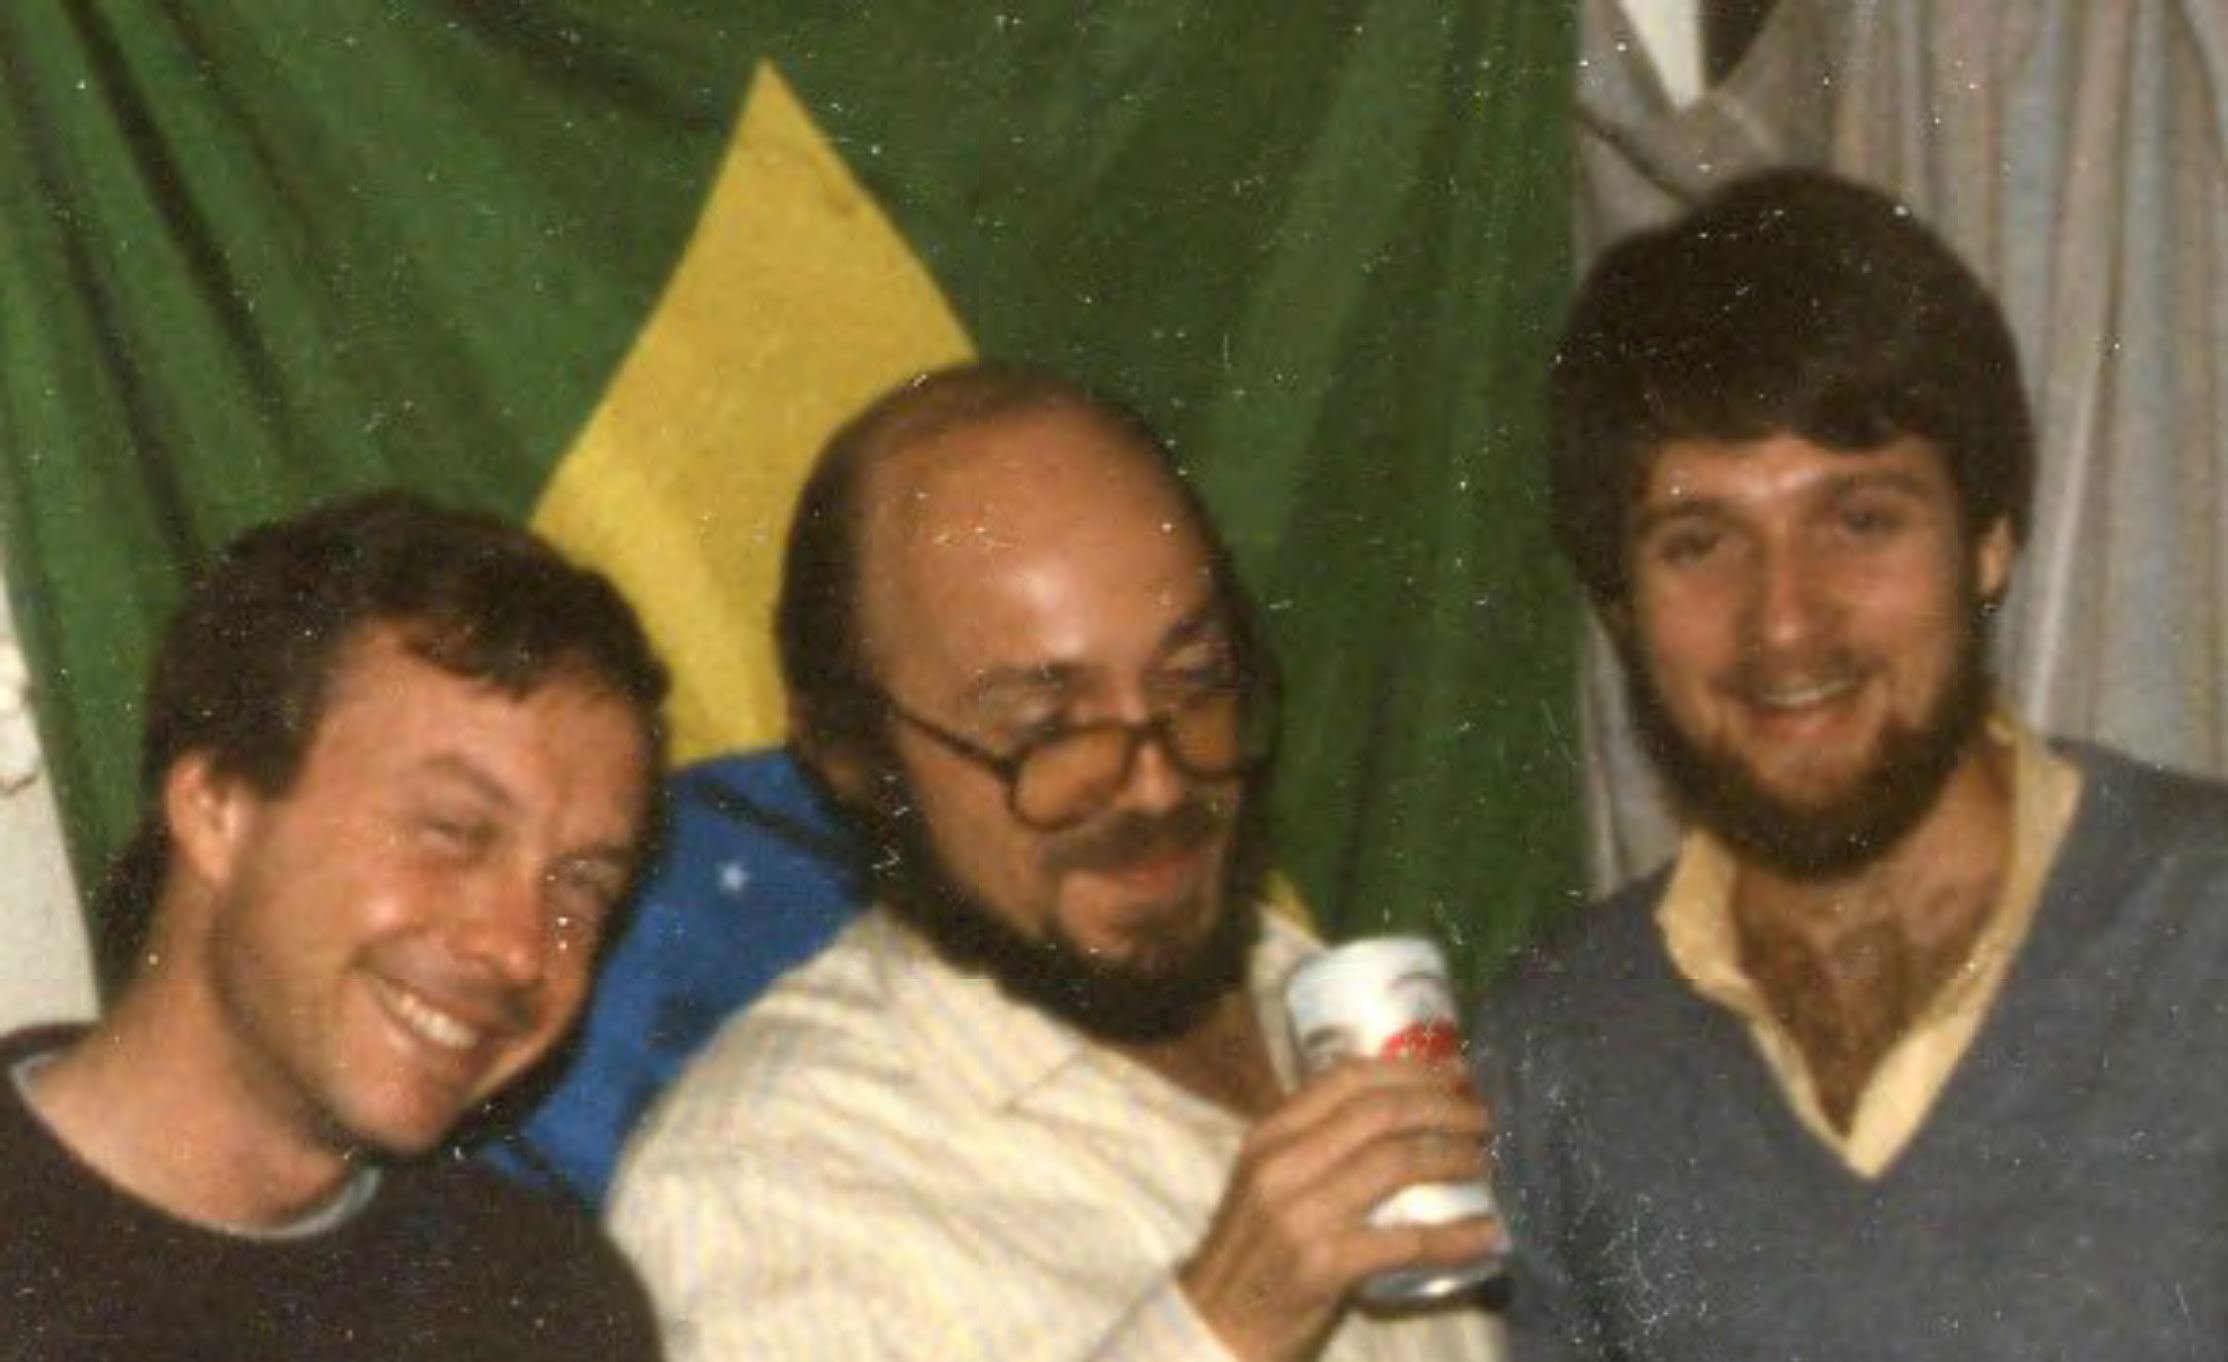 "<span  class=""uc_style_uc_tiles_grid_image_elementor_uc_items_attribute_title"" style=""color:#ffffff;"">Me with Leonardo Sá some time in the 80s.</span>"